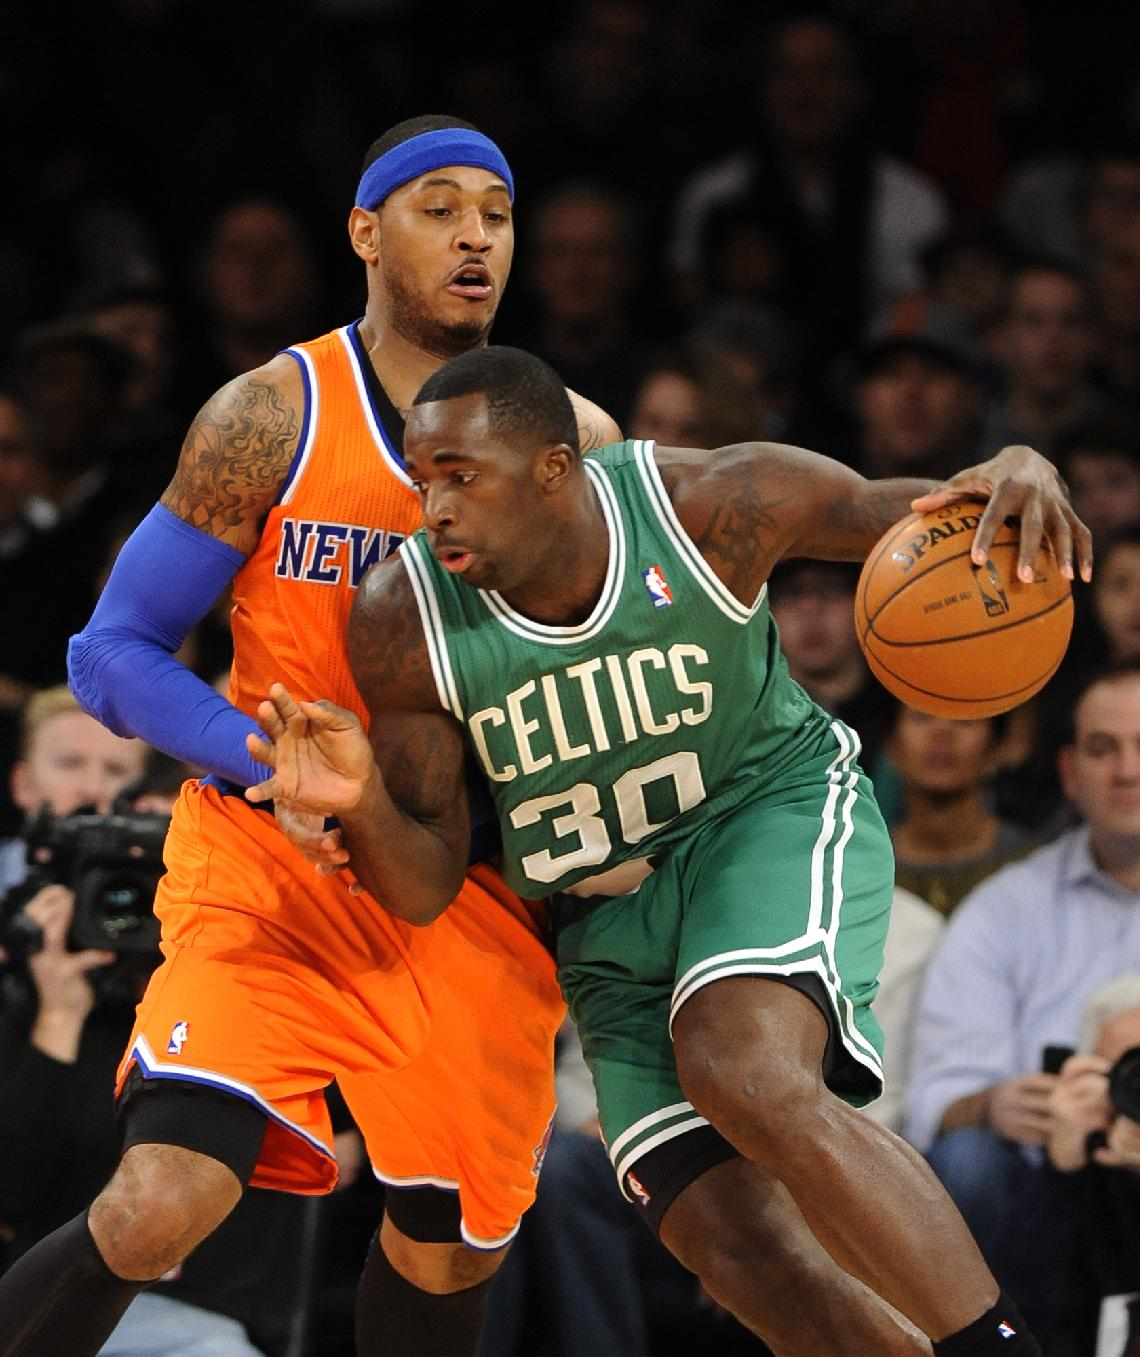 Celtics top Knicks 114-73, biggest rout of season